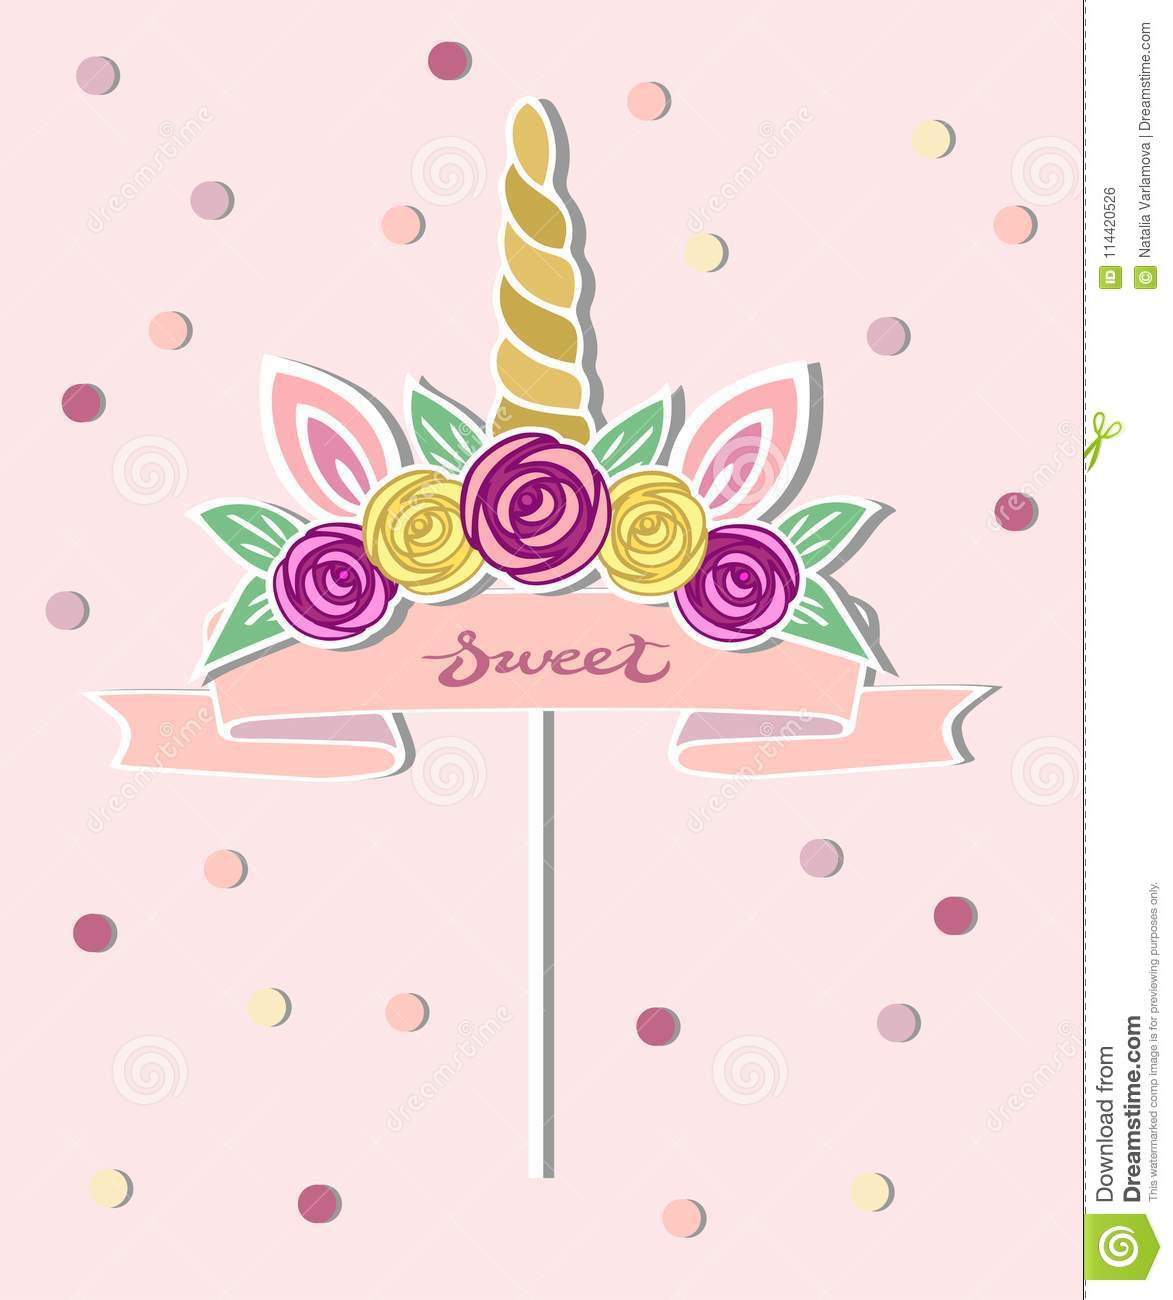 Vector Illustration With Unicorn Horn Ears Flower Wreath Pink Ribbon As Topper Patch Sticker Or Decoration For Baby Birthday